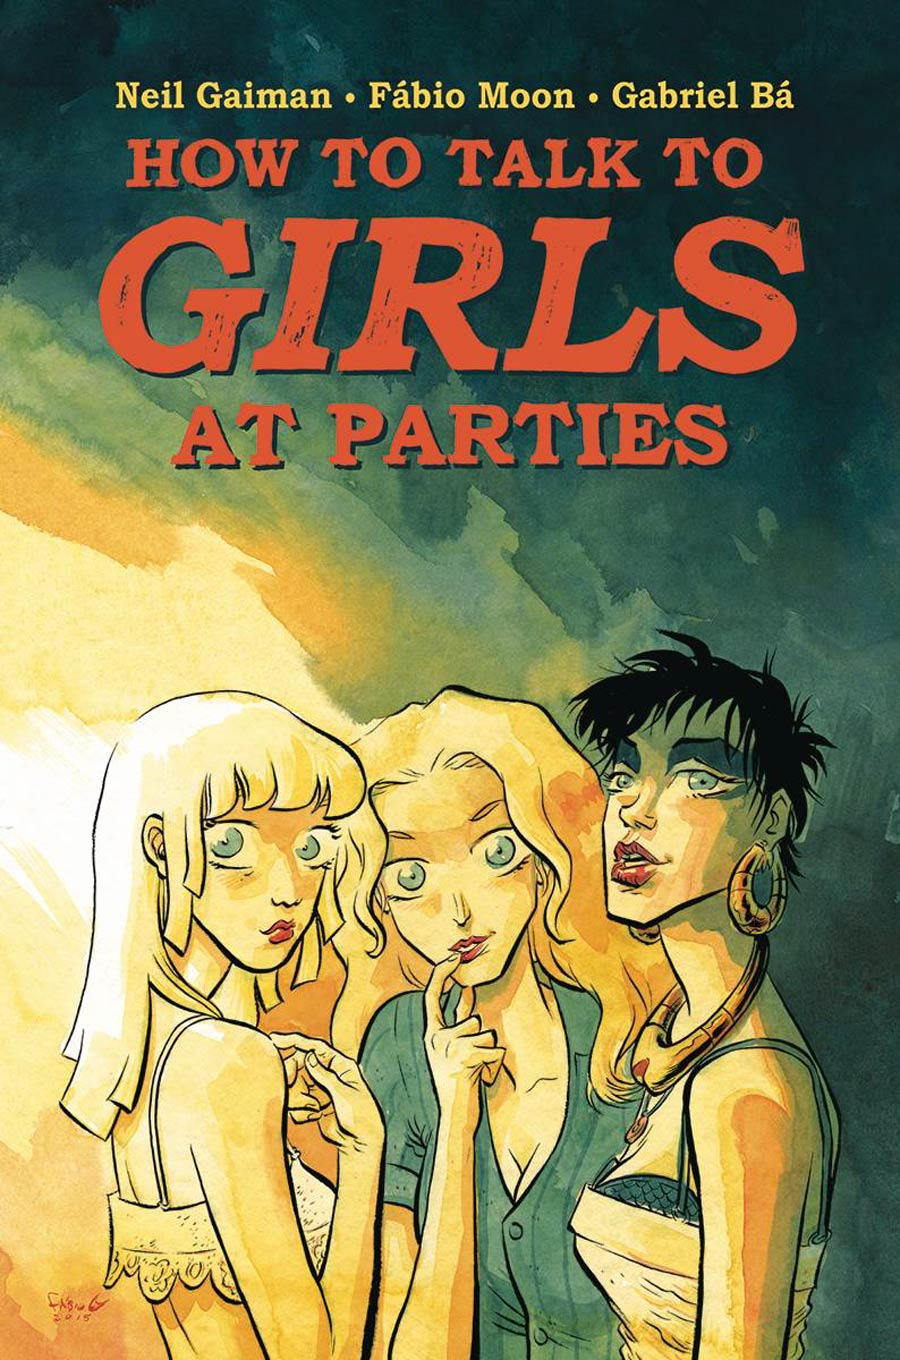 How to Talk to Girls at Parties - Neil Gaiman (W), Fabio Moon & Gabriel Ba (A) • Dark Horse Comics